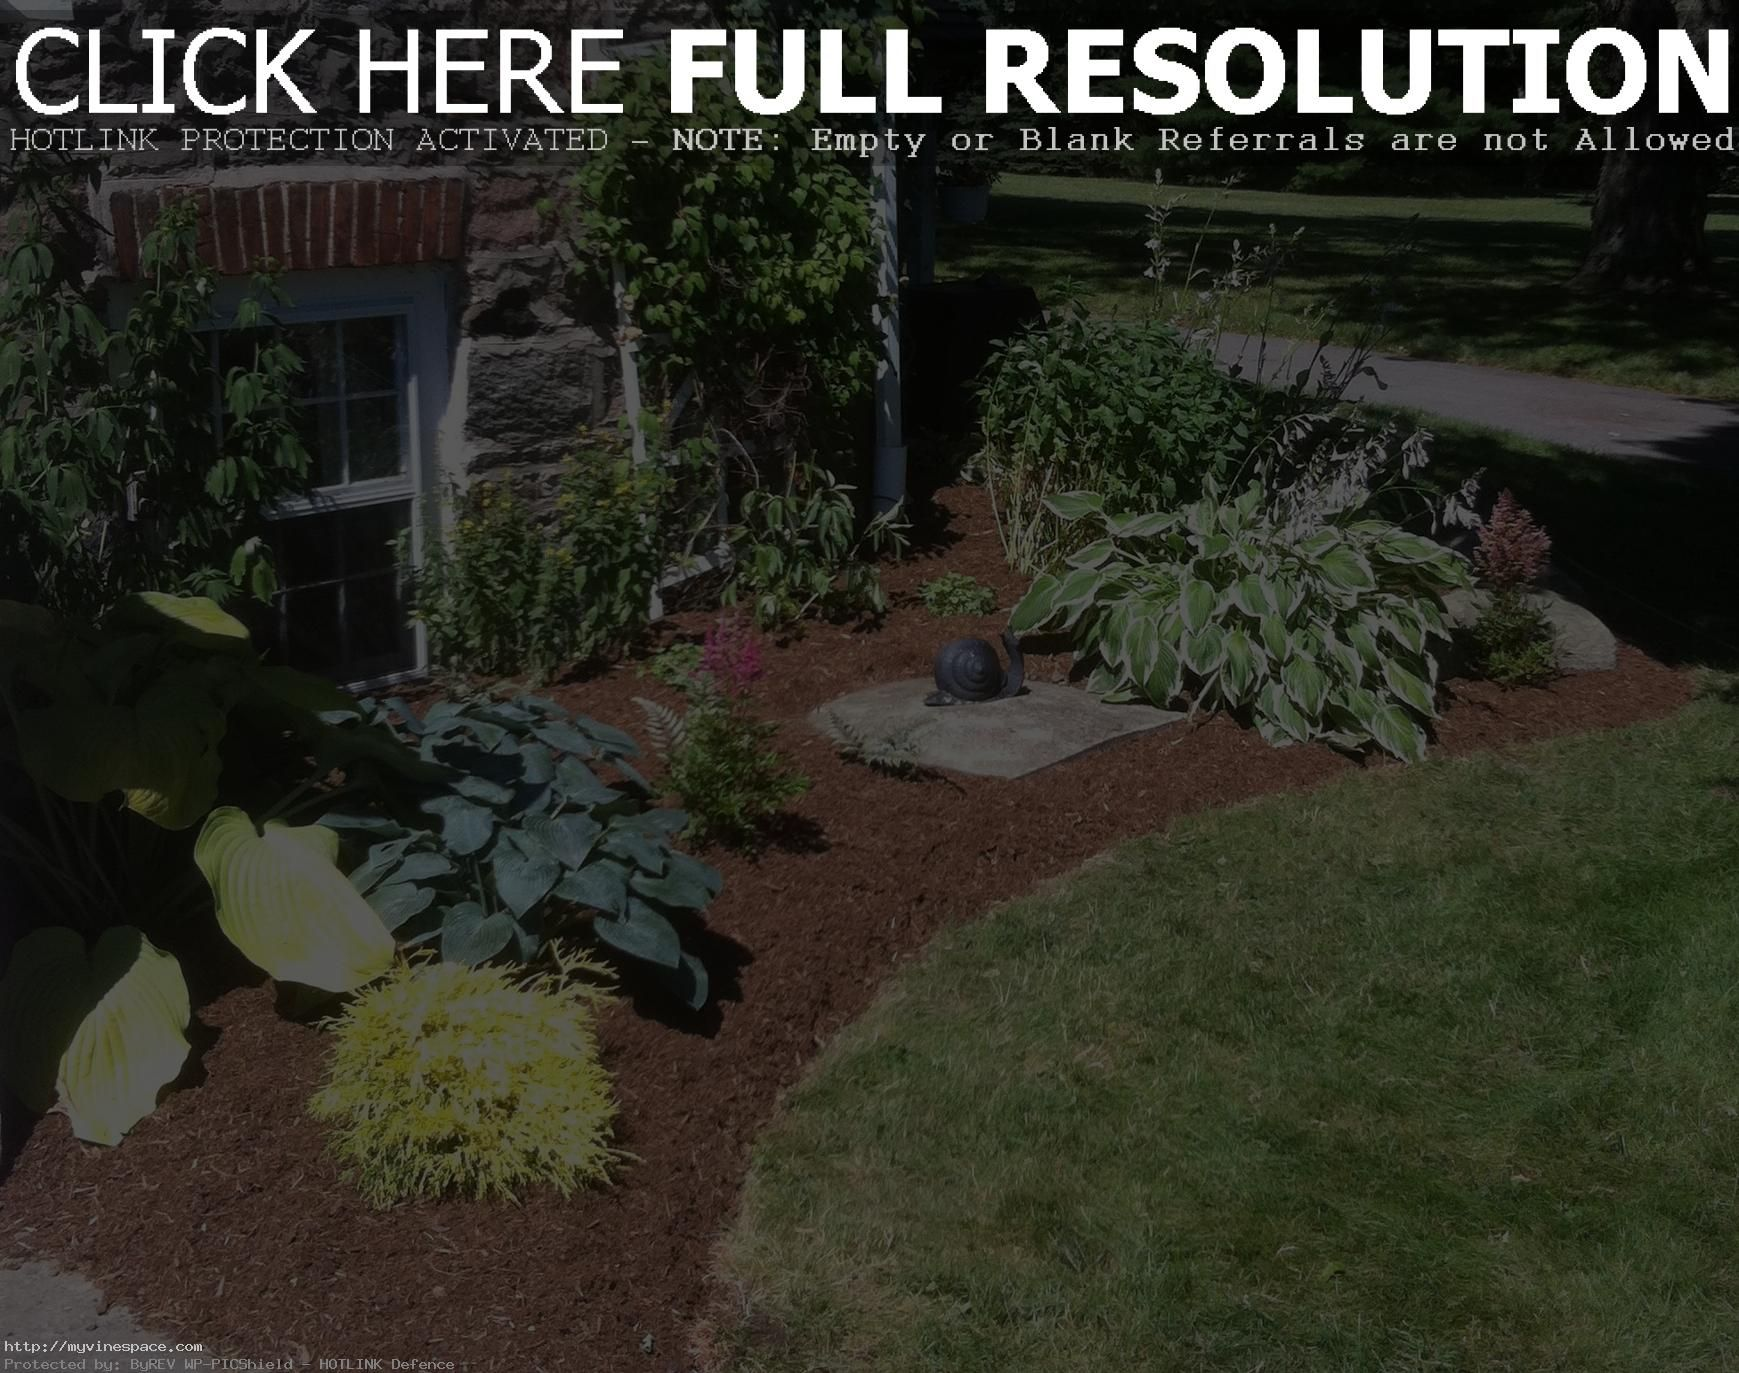 Landscaping Ideas For The Front Yard Better Homes And Gardens Onbudget Landscaping Lowmaintenan Better Homes And Gardens Front Yard Front Yard Landscaping